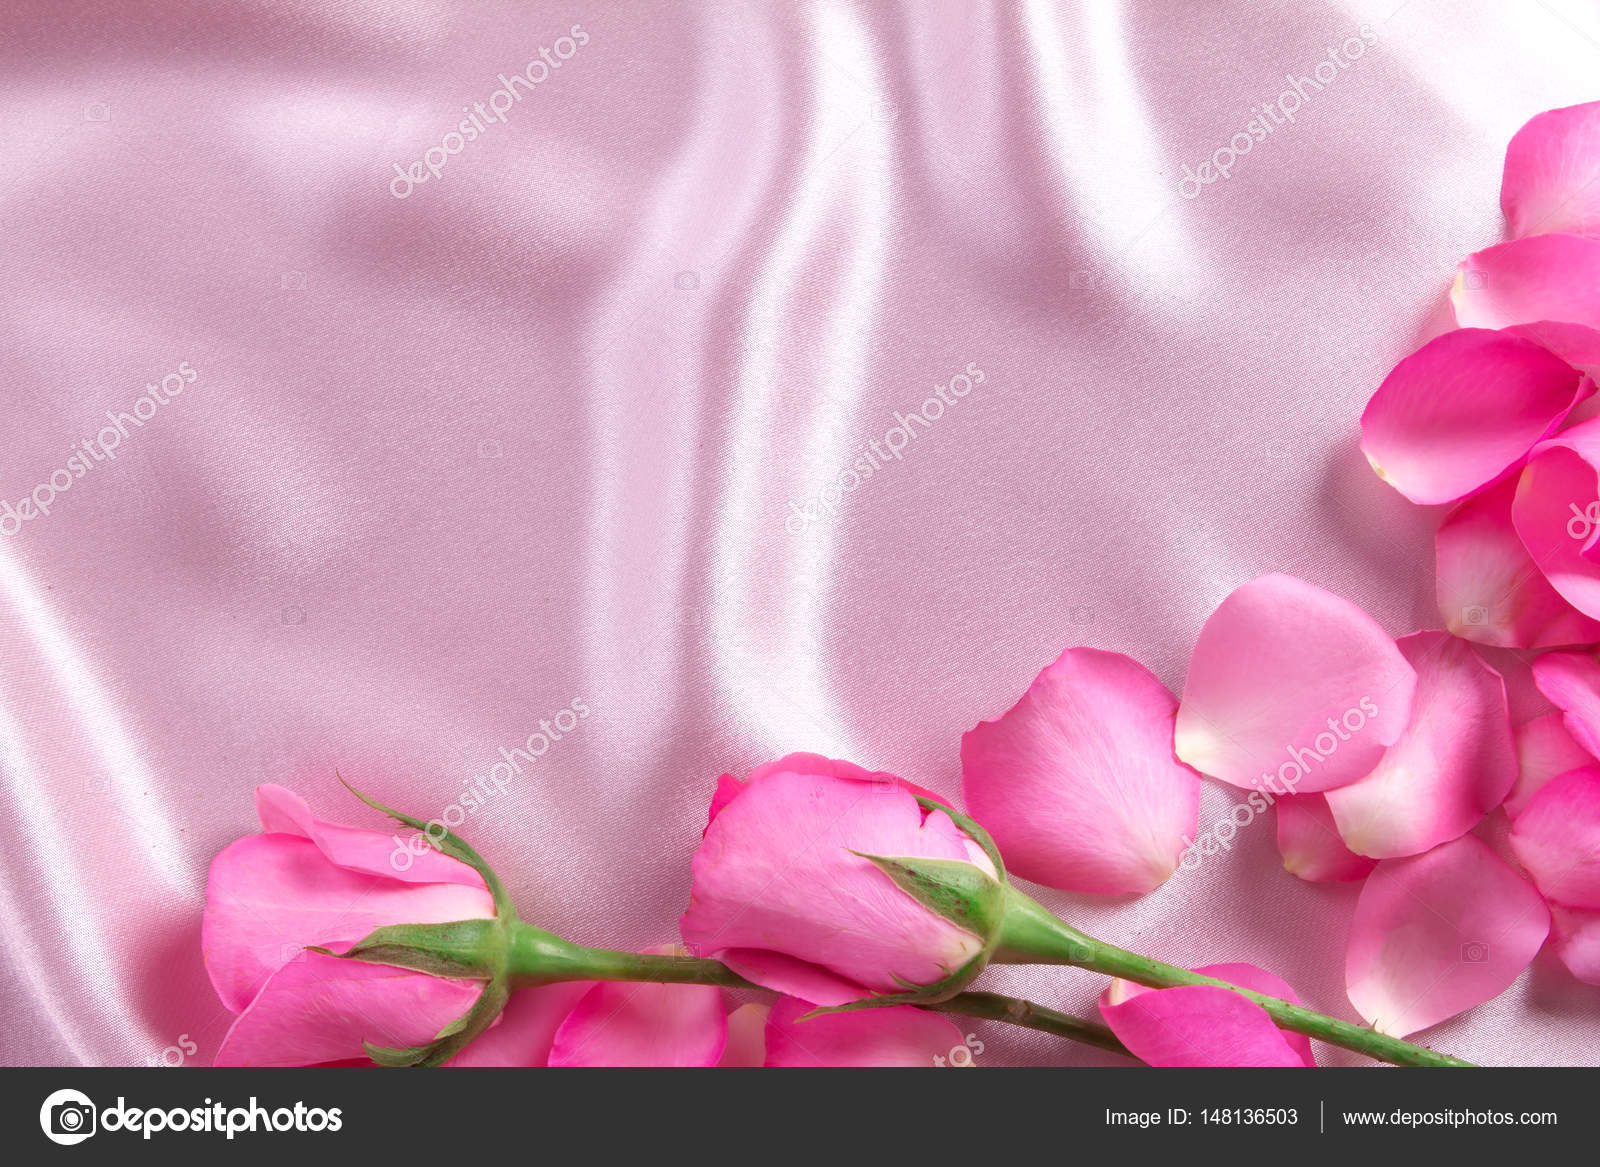 A Bouquet Sweet Pink Roses Petal On Soft Pink Silk Fabric Roma